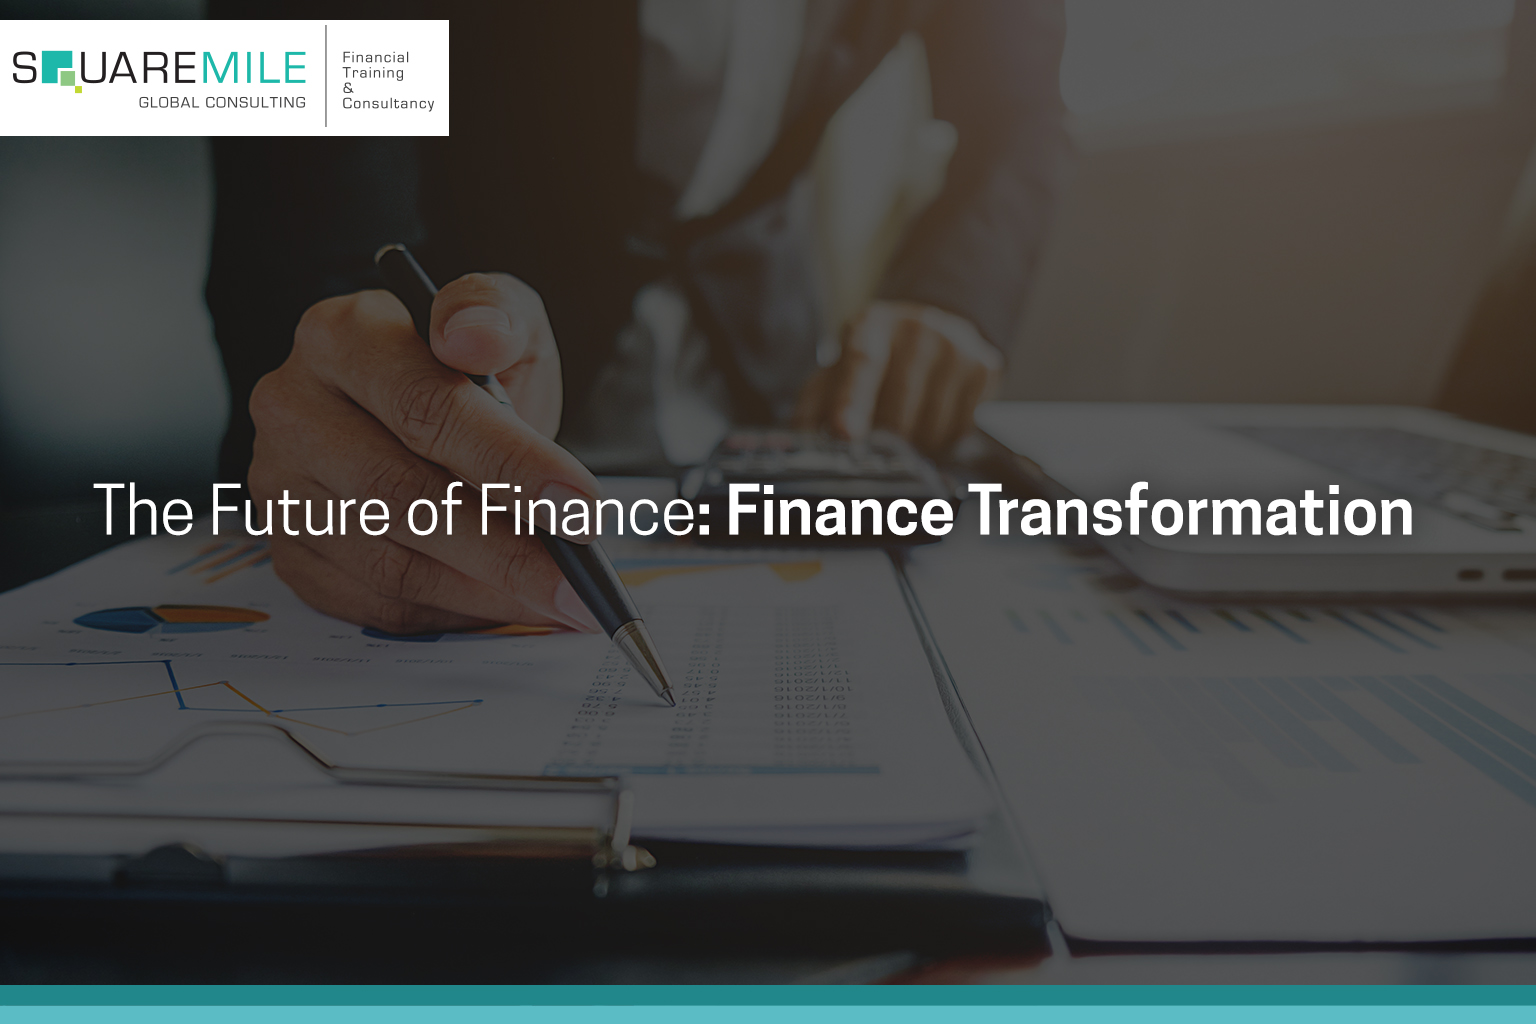 The-Future-of-finance-Finance-Transformation-Square-Mile-Global-Consulting